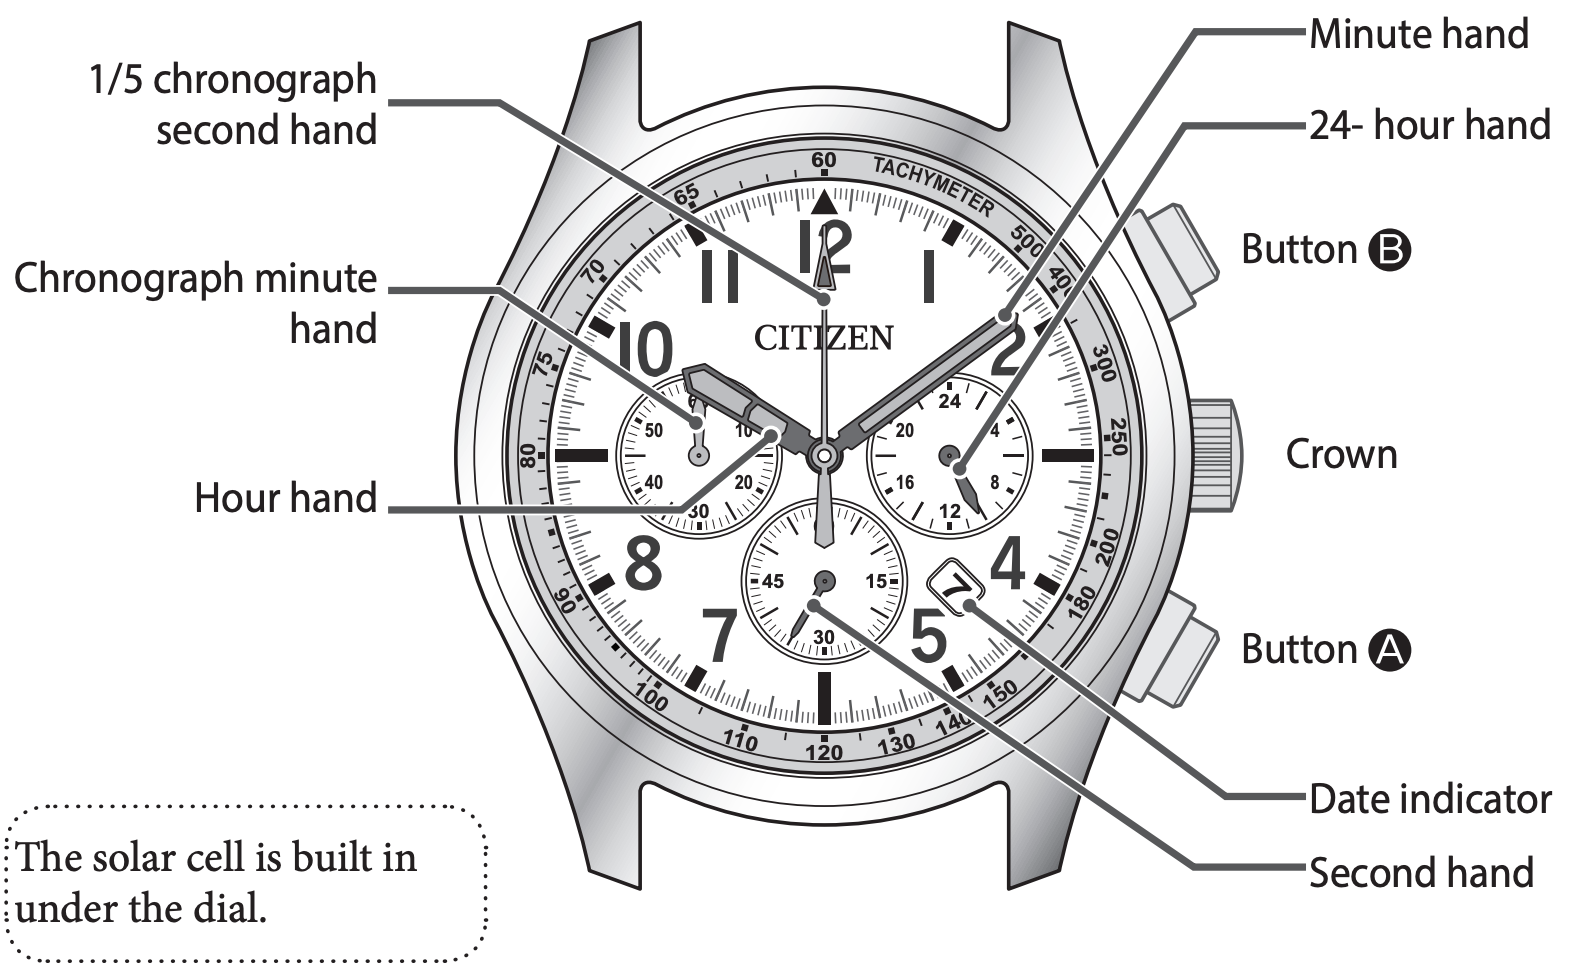 B620 Manual – Citizen pertaining to Citizen Eco Drive Chronograph Wr100 Manual